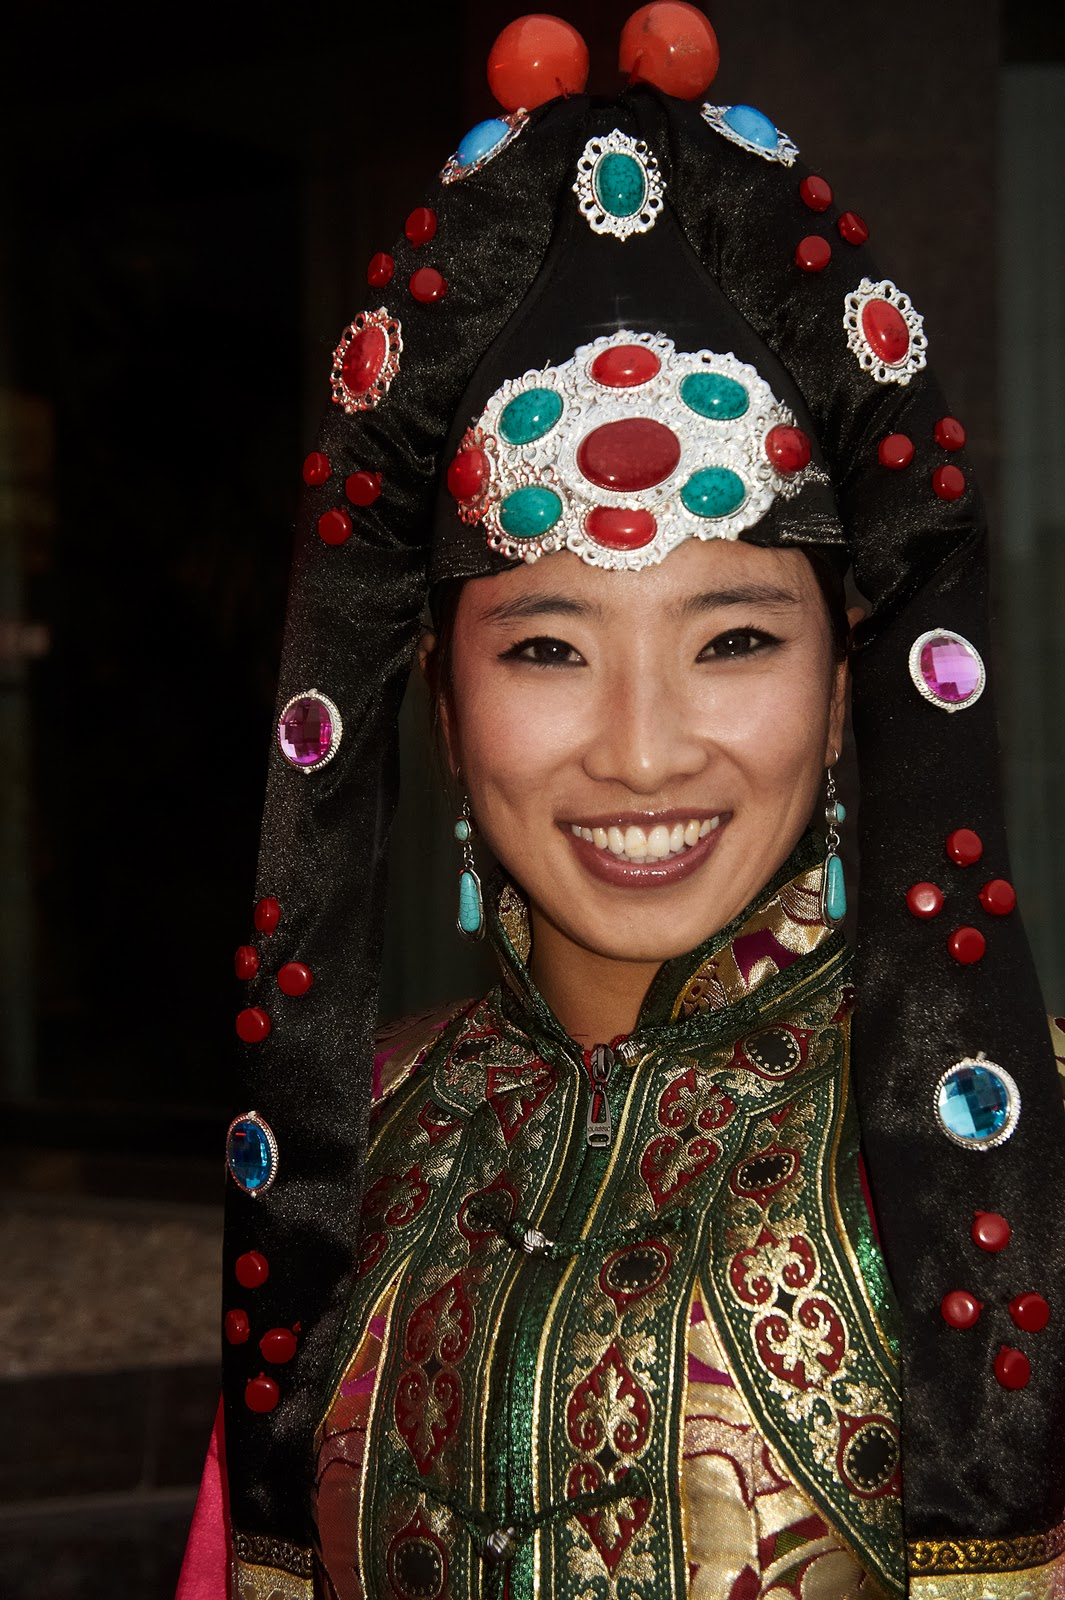 lovely Mongolian girl – traditional Mongolian dance performer.: http://kaisernchen.blogspot.com/2011_11_01_archive.html